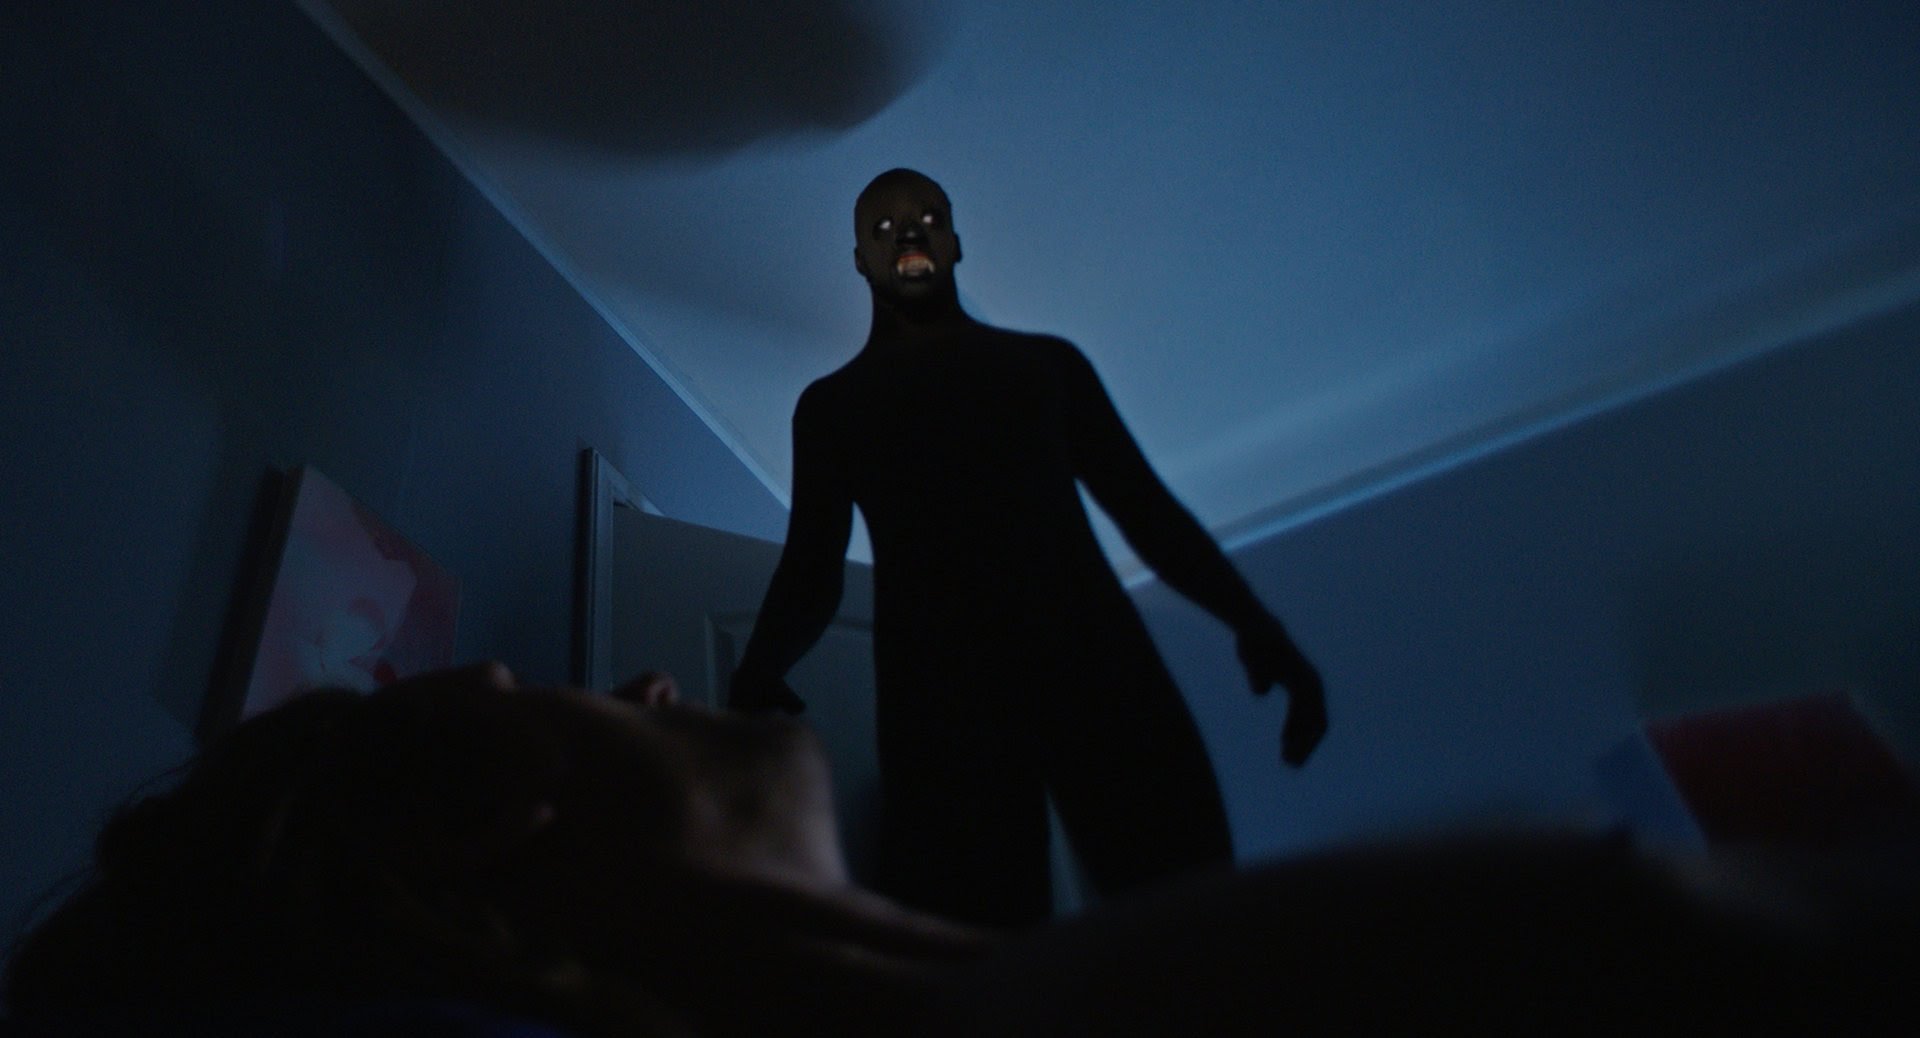 How to Watch a Horror Movie Without Getting Scared forecasting